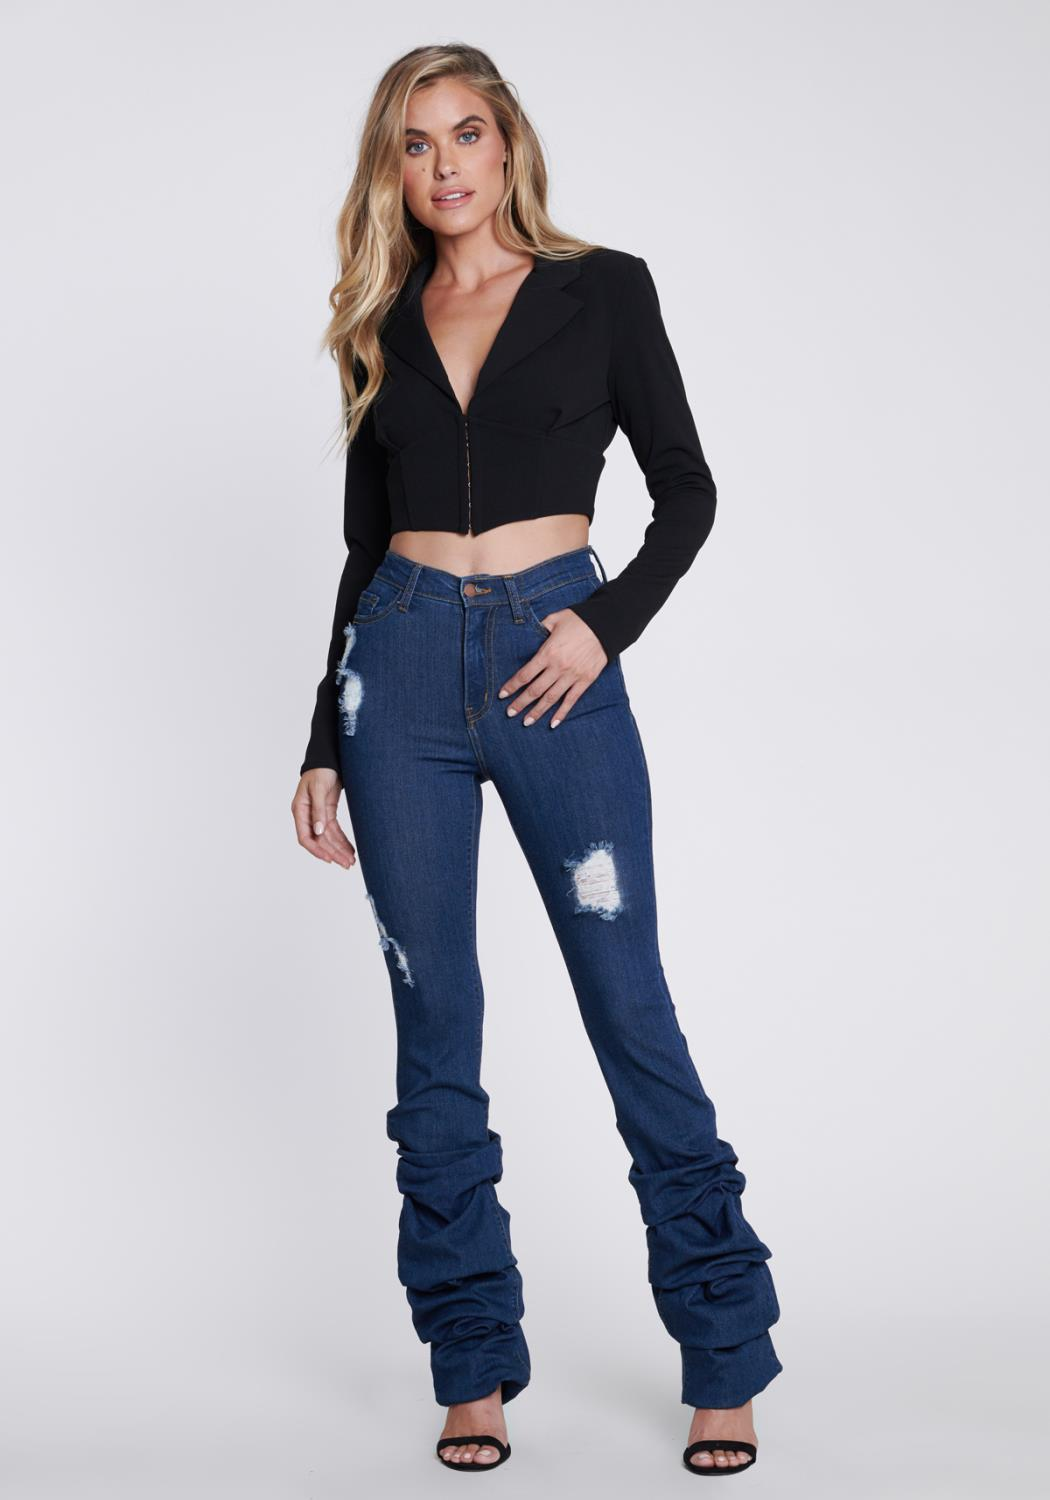 Distressed Scrunch It Up Jeans